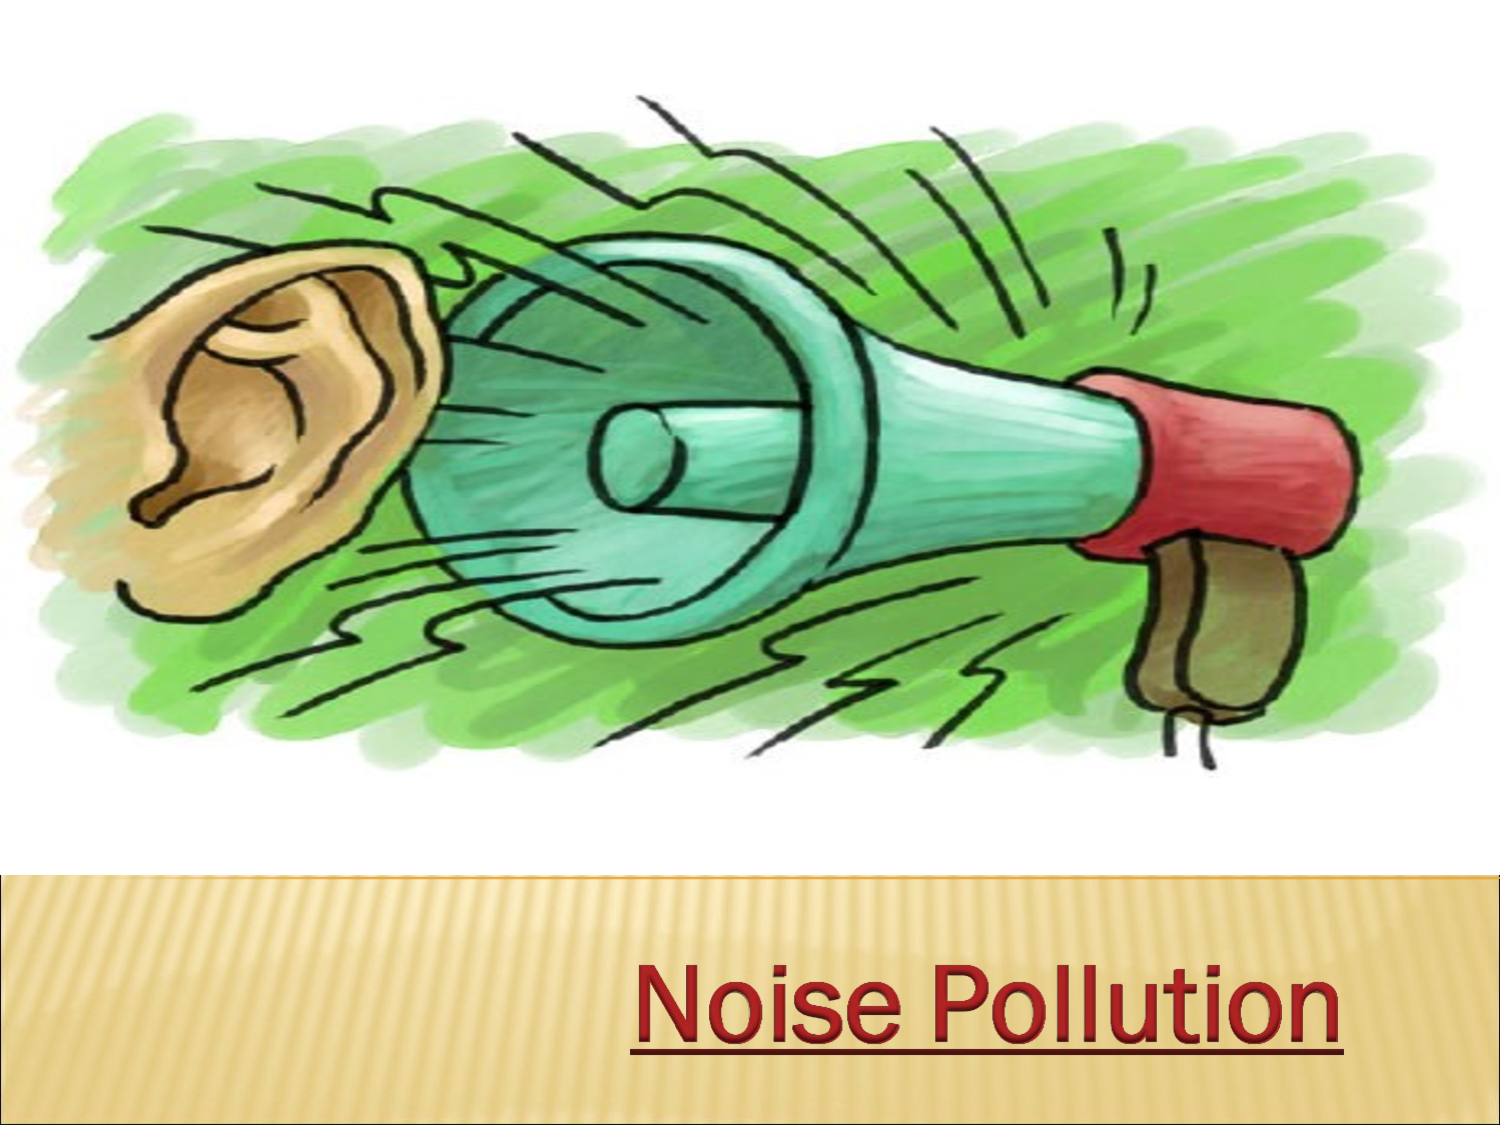 noise pollution and mitigation in urban Treating the issue of noise pollution in numerous urban communities through the  world  once the highest level is being identify, a propose mitigation is being.